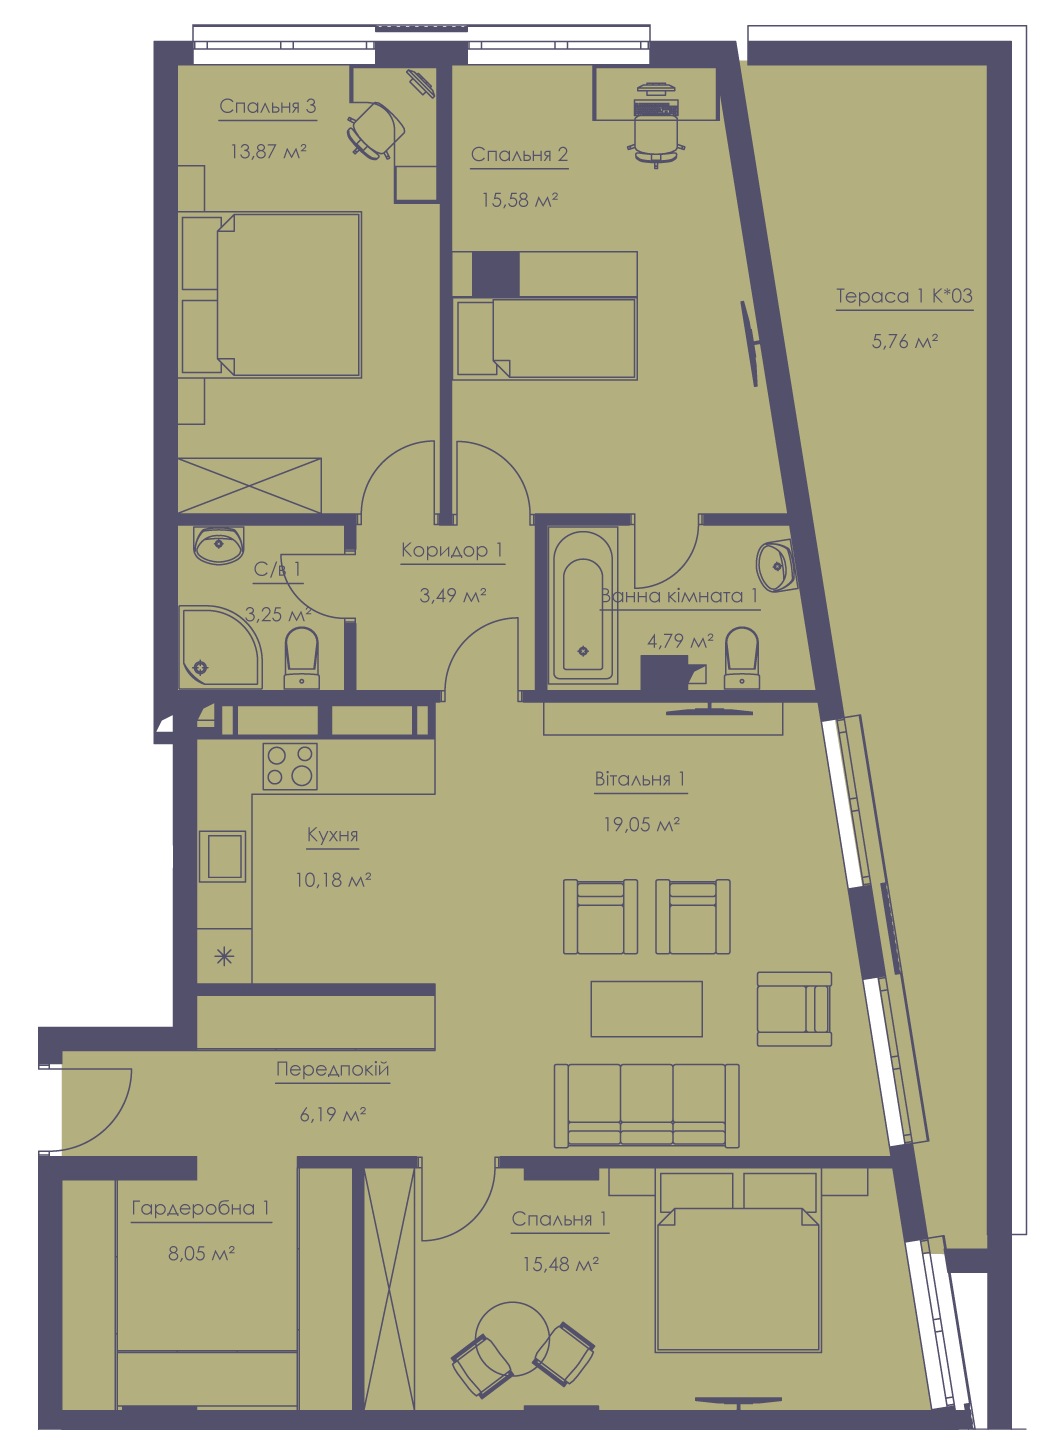 Apartment layout KV_144_3.4g_1_1_11-1